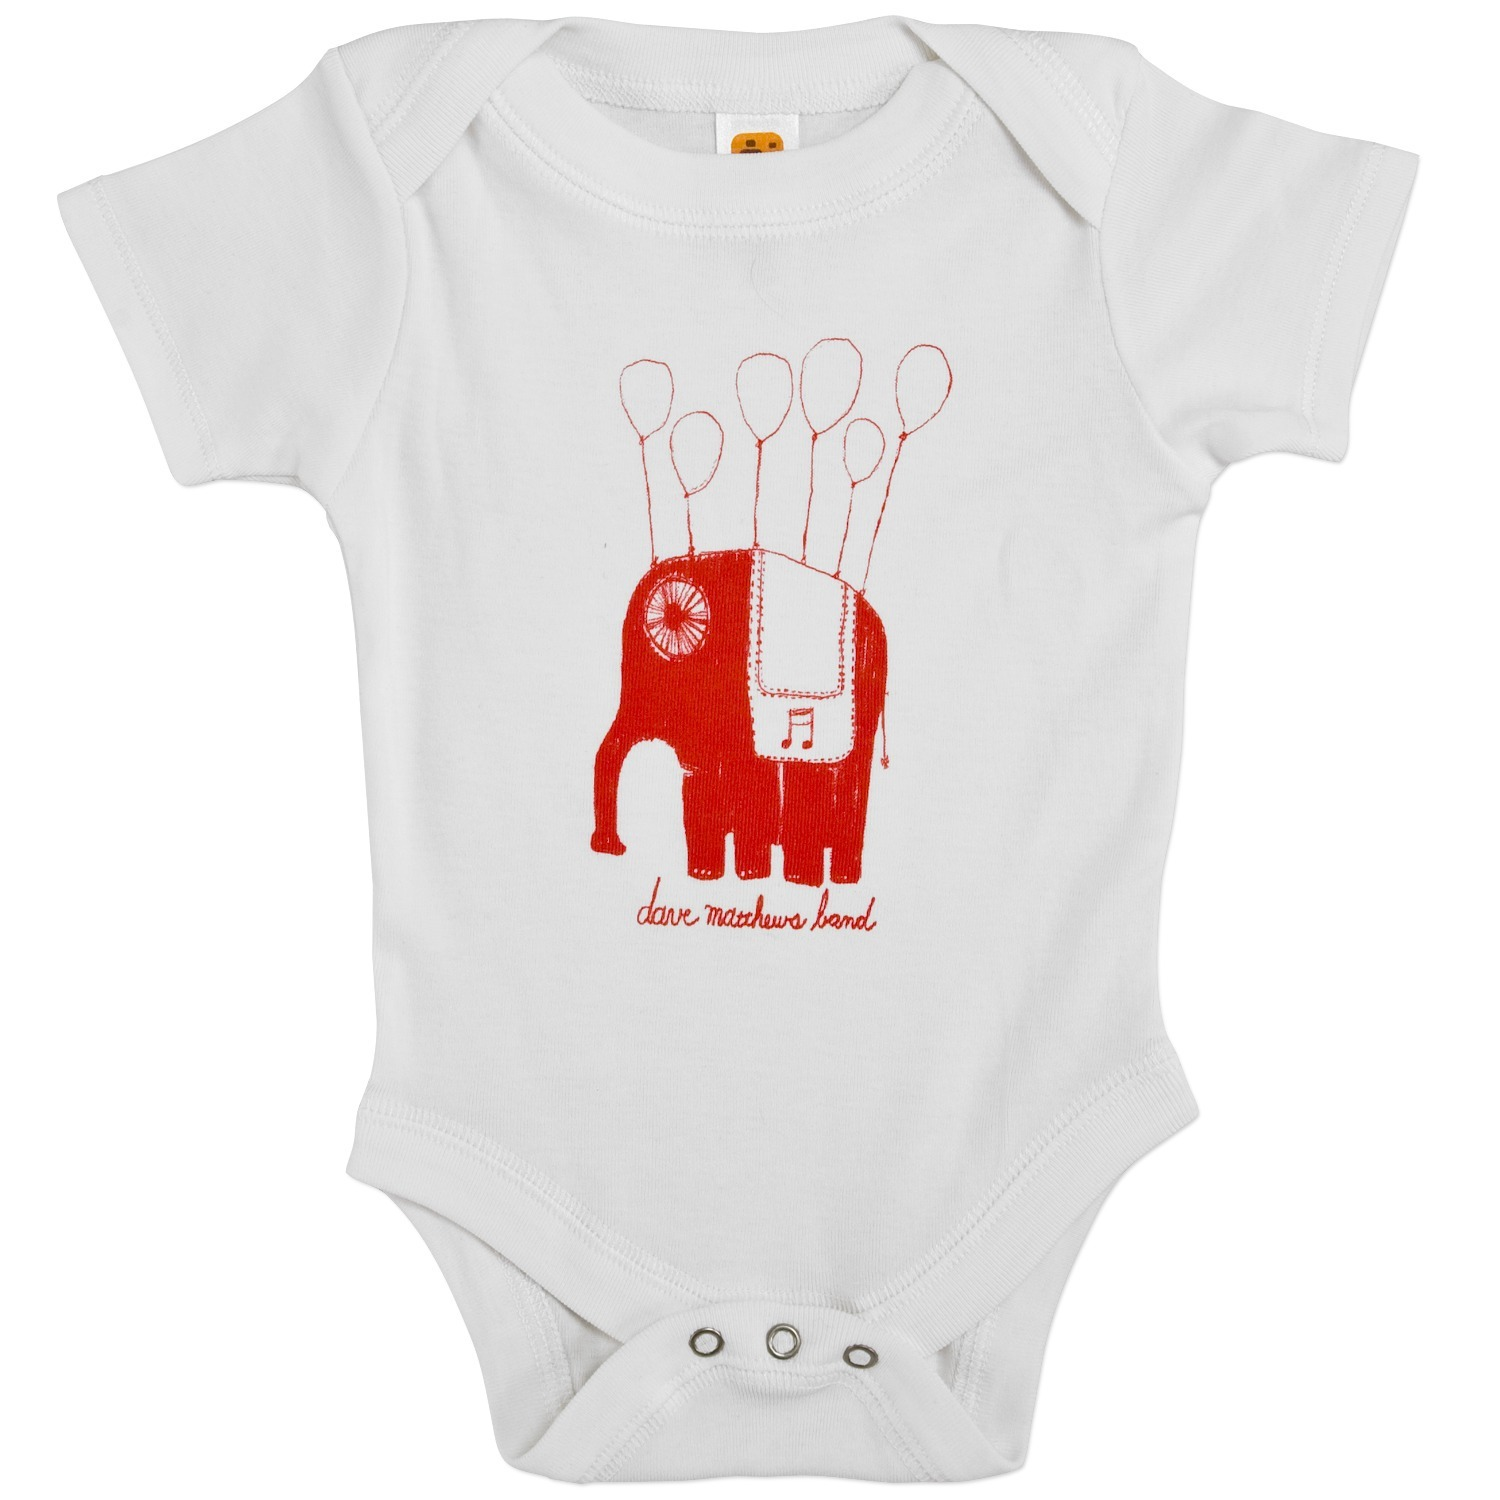 Dmb baby floating elephant onesie shop the musictoday merchandise official store